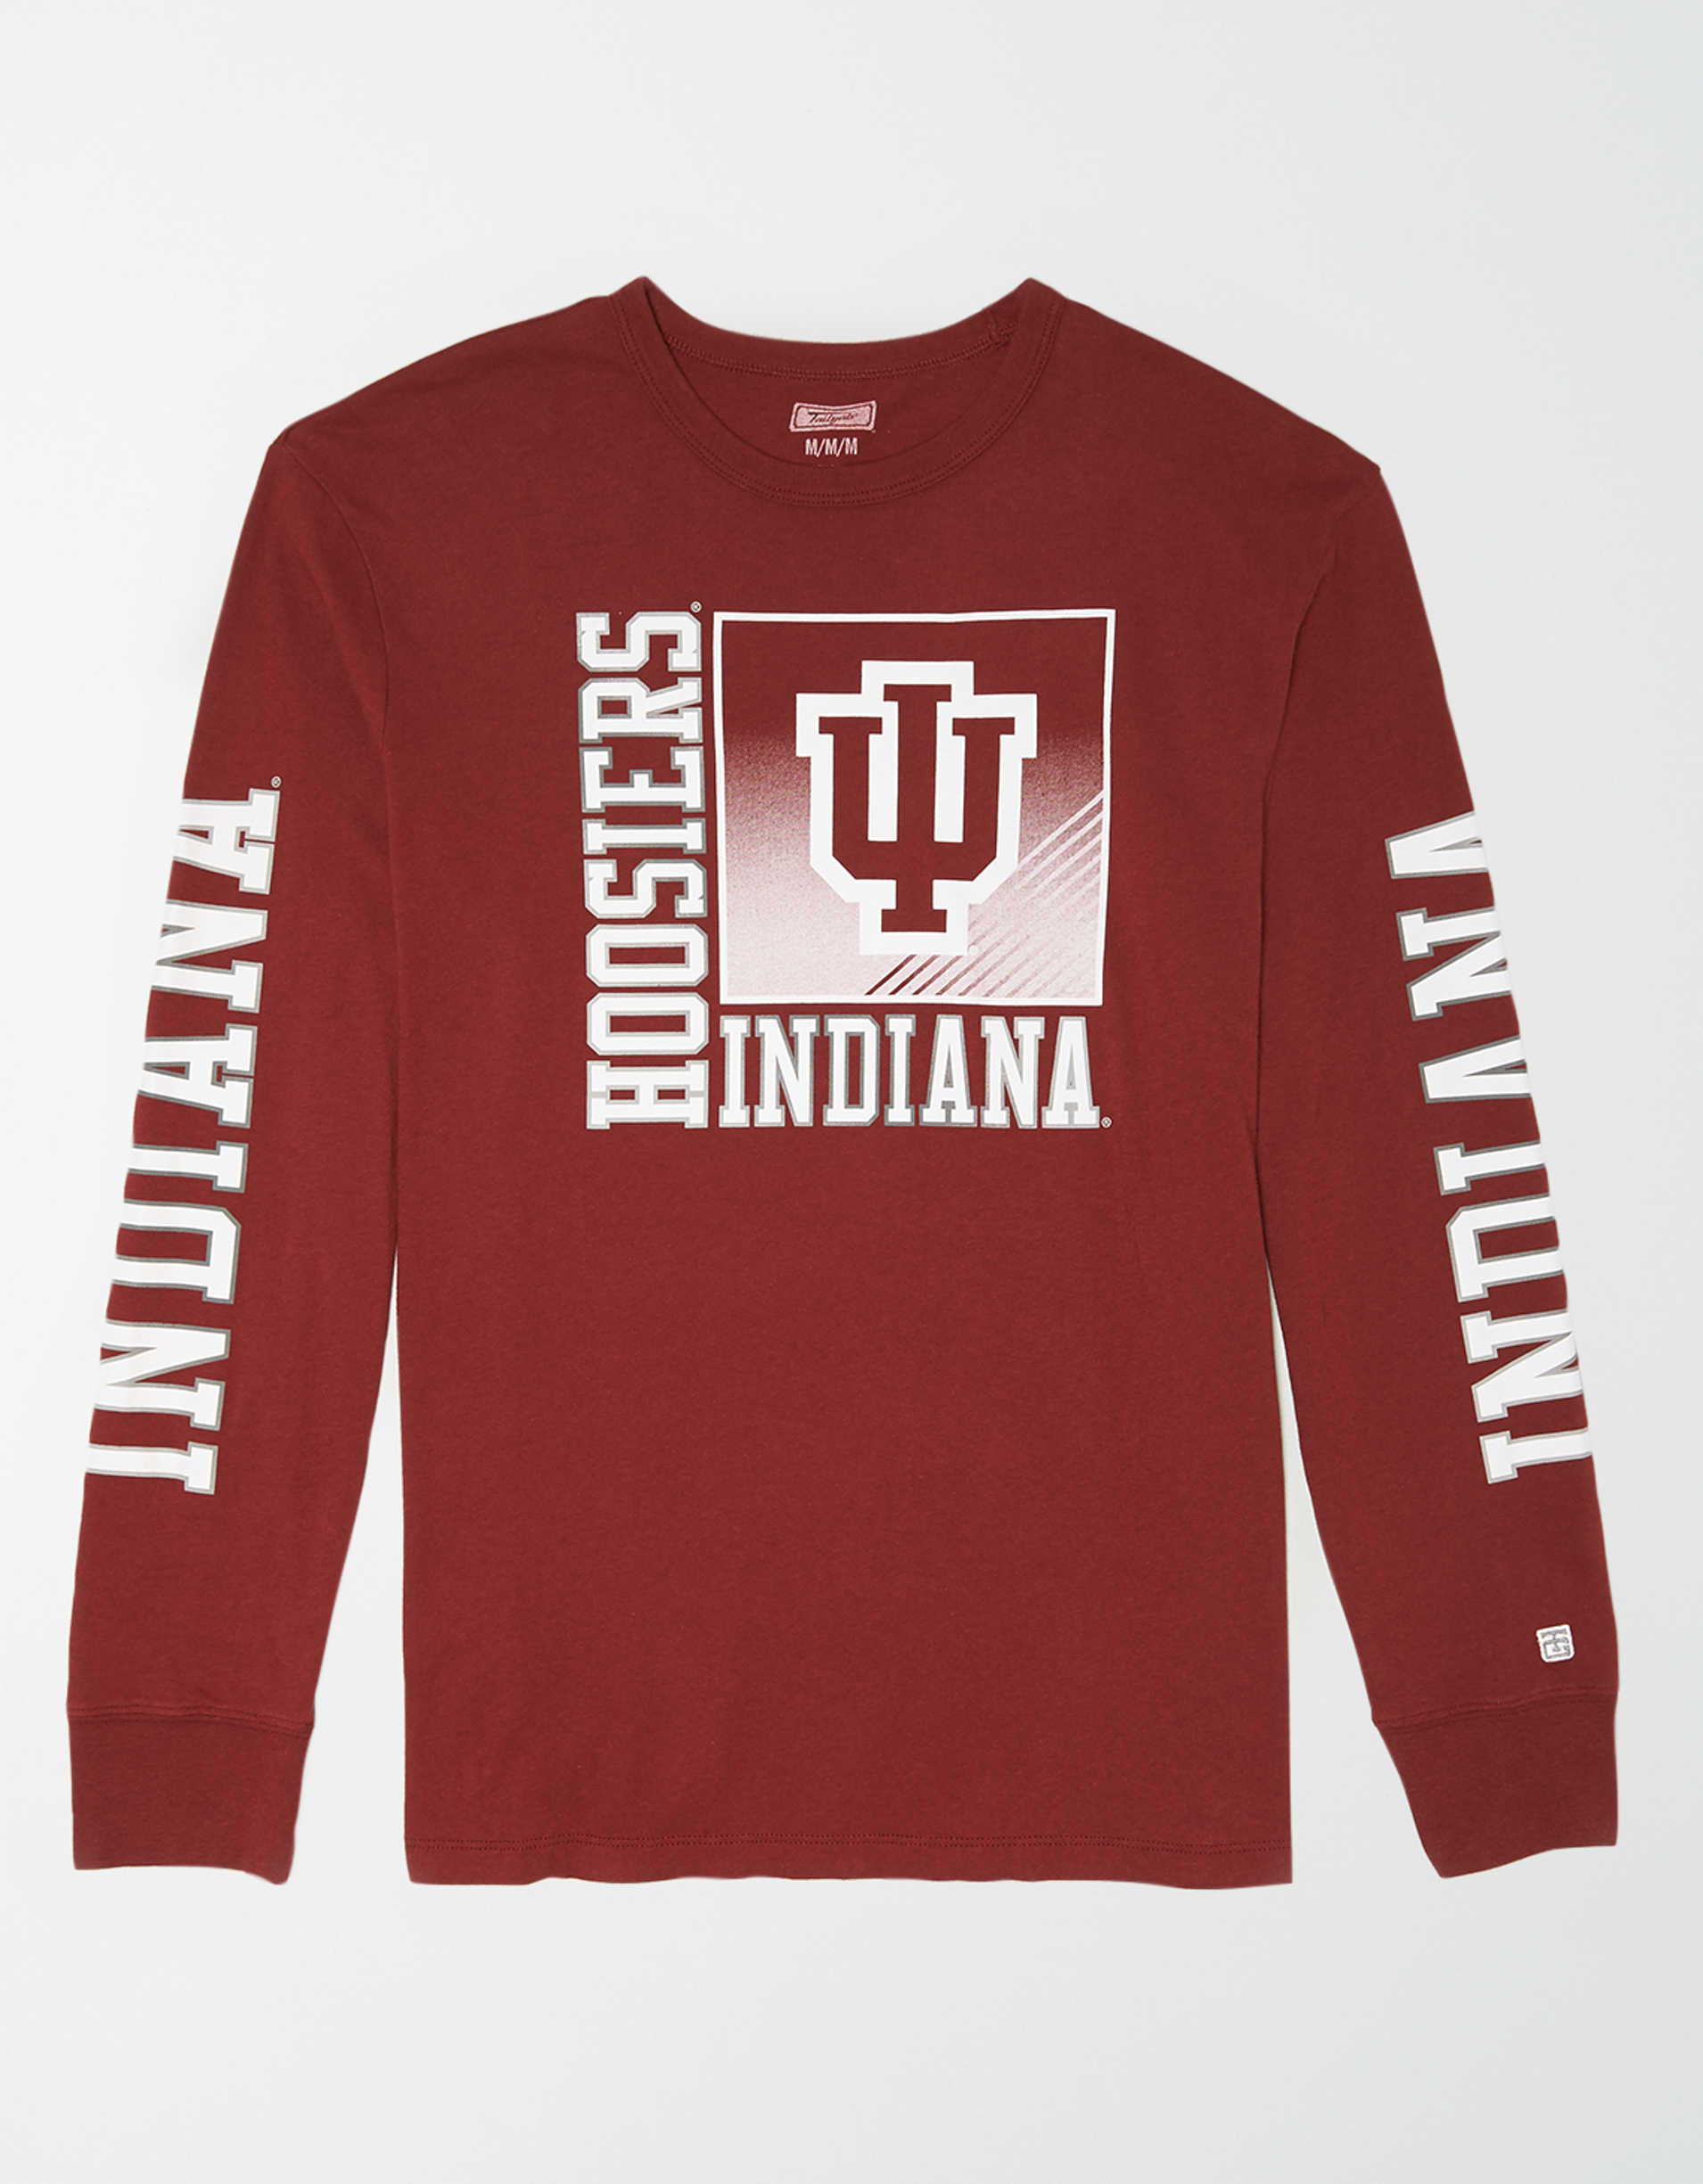 Tailgate Men's Indiana Long Sleeve T-Shirt